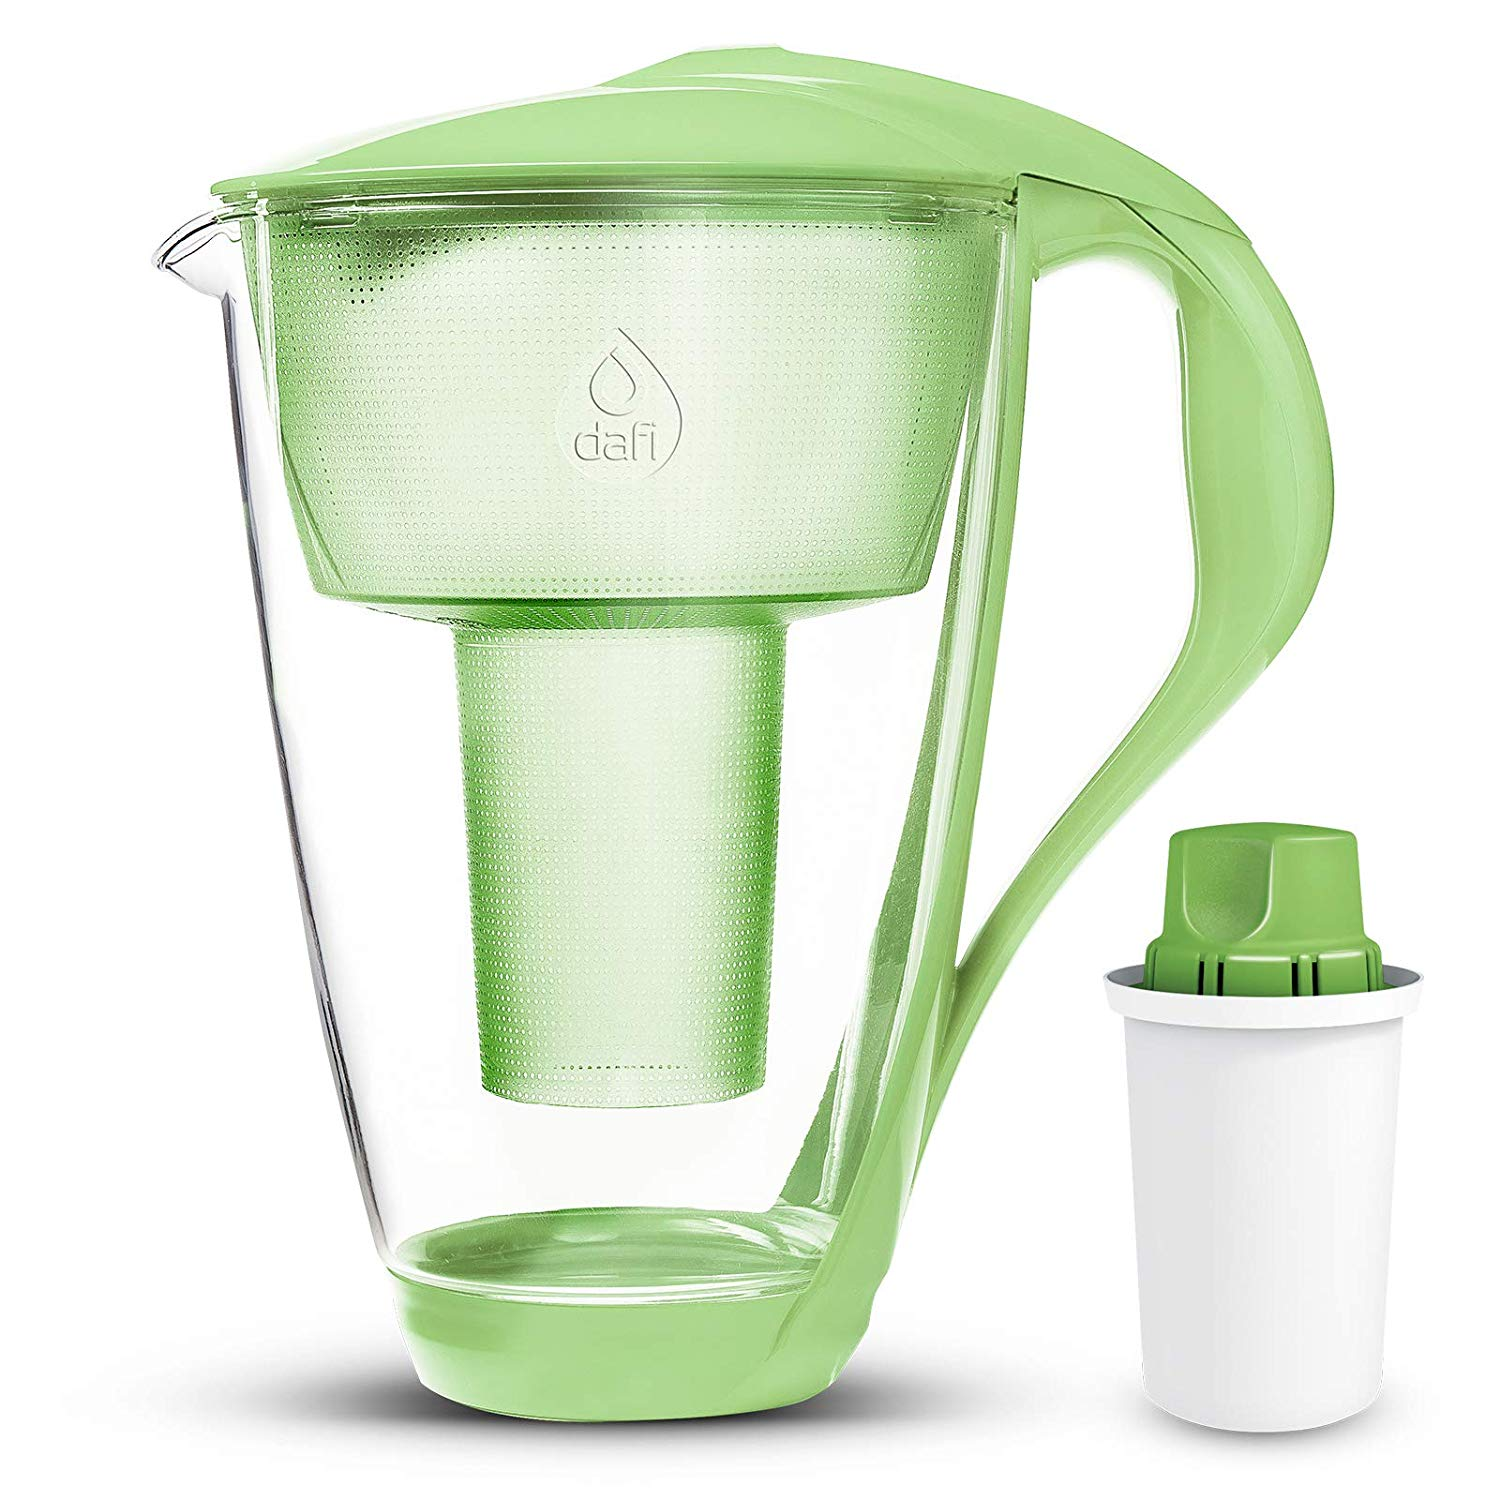 dafi-alkaline-up-crystal-pitcher-8-cups-innovative-alkaline-water-system-glass-water-pitcher-highest-quality-laboratory-borosilicate-glass-with-ergonomic-bpa-free-plastic-parts-green-1.jpg